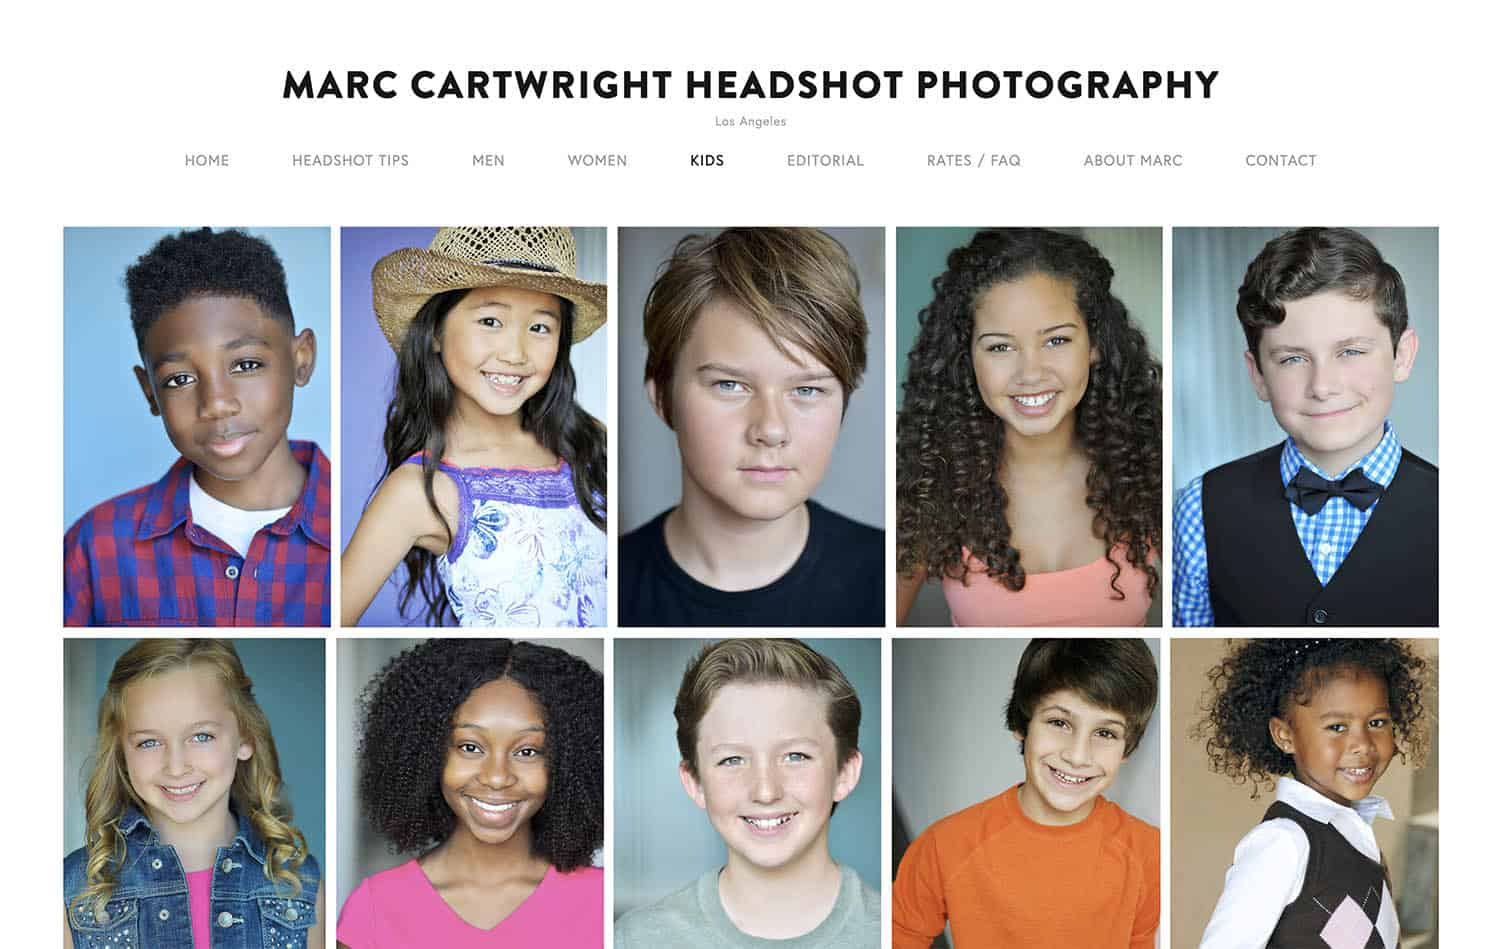 This page of Marc Cartwright's website showcases his kids' headshots. Ten close-up portraits of young people of varying ethnicities are featured below his logo.